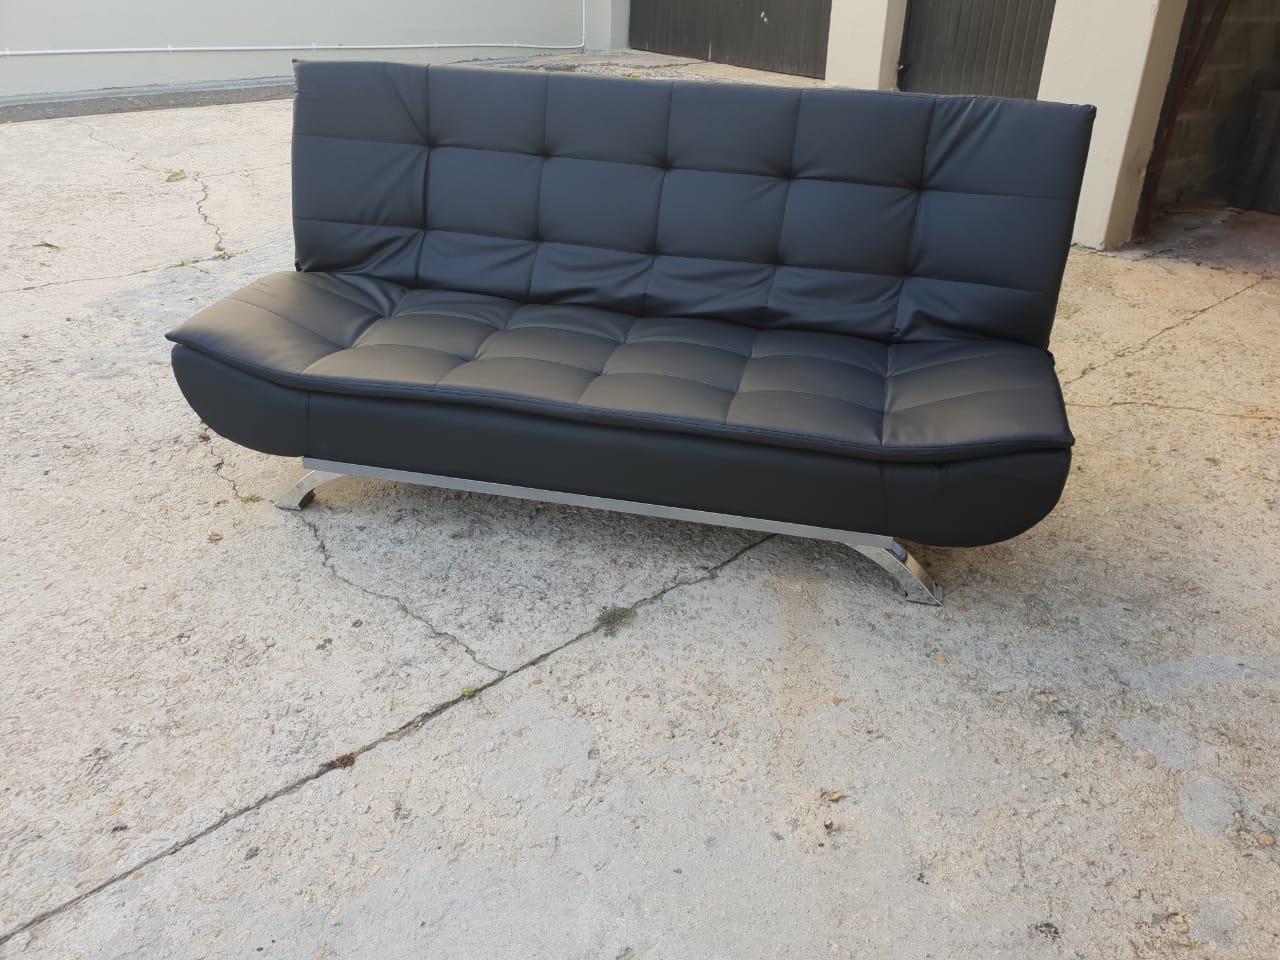 New Black Sleeper Couch Junk Mail